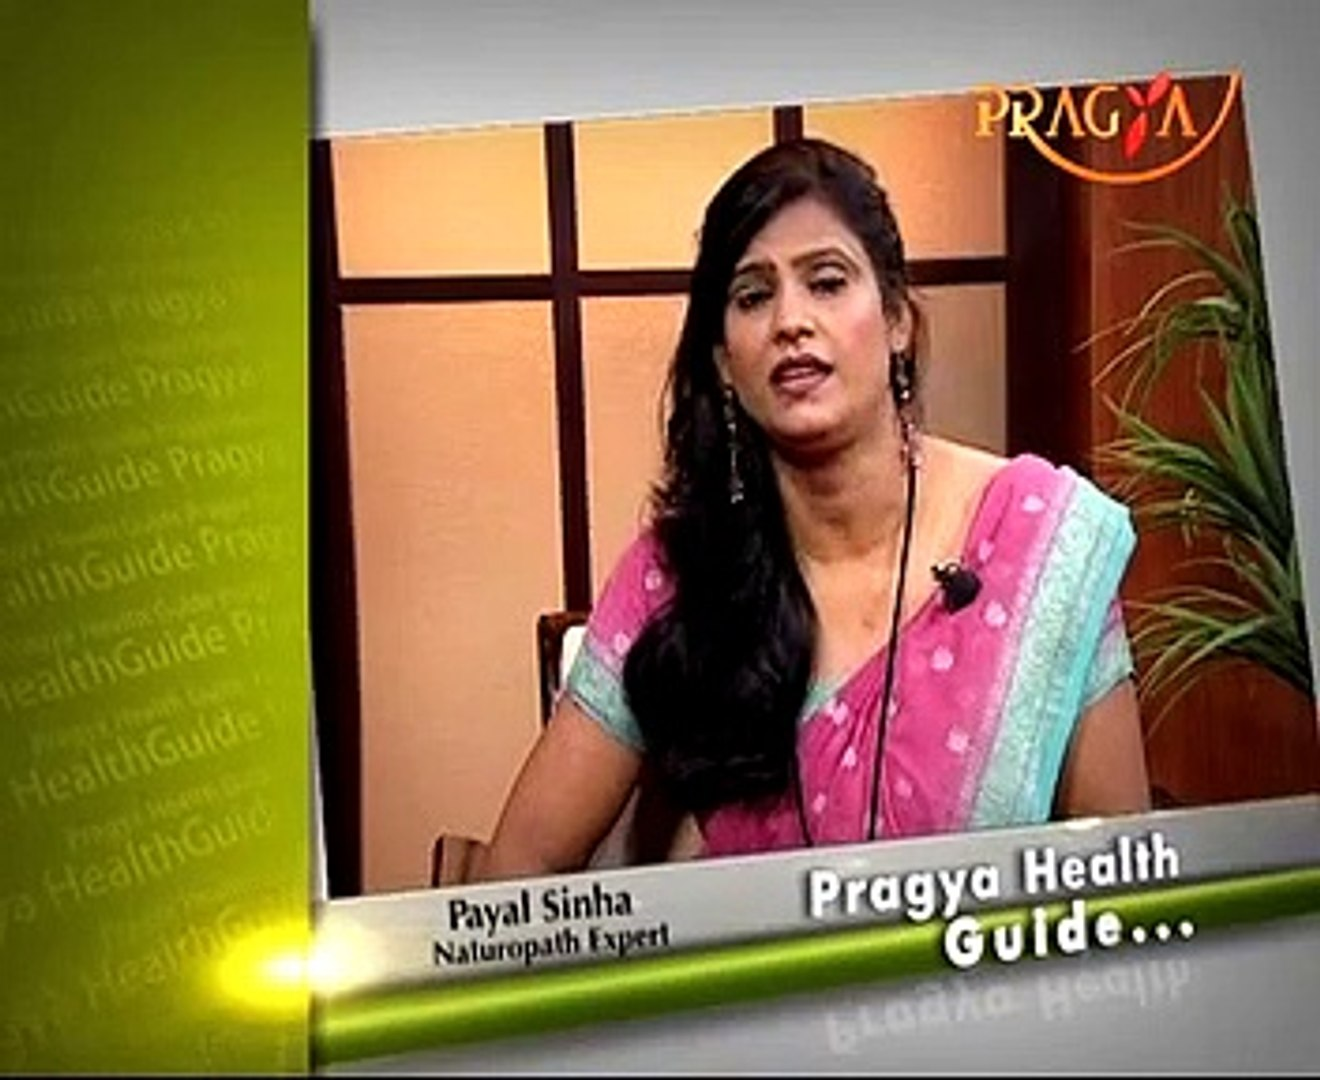 Best Herbal Treatment For Natural Beauty By Dr. Payal Sinha(Naturopath  Expert)